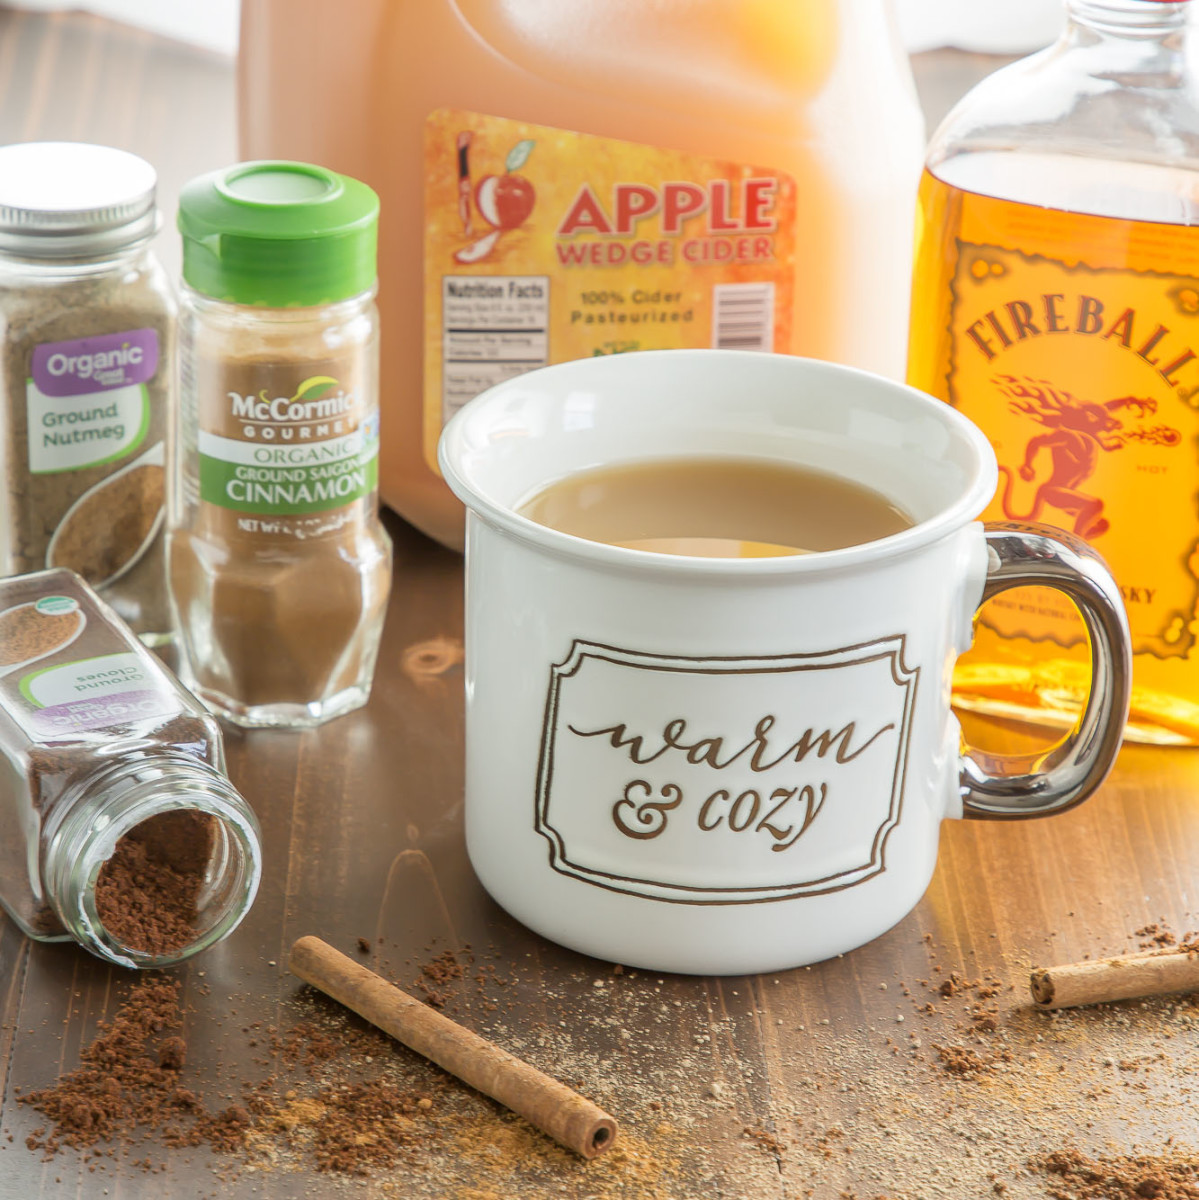 Hard Apple Cider Recipe Ingredients